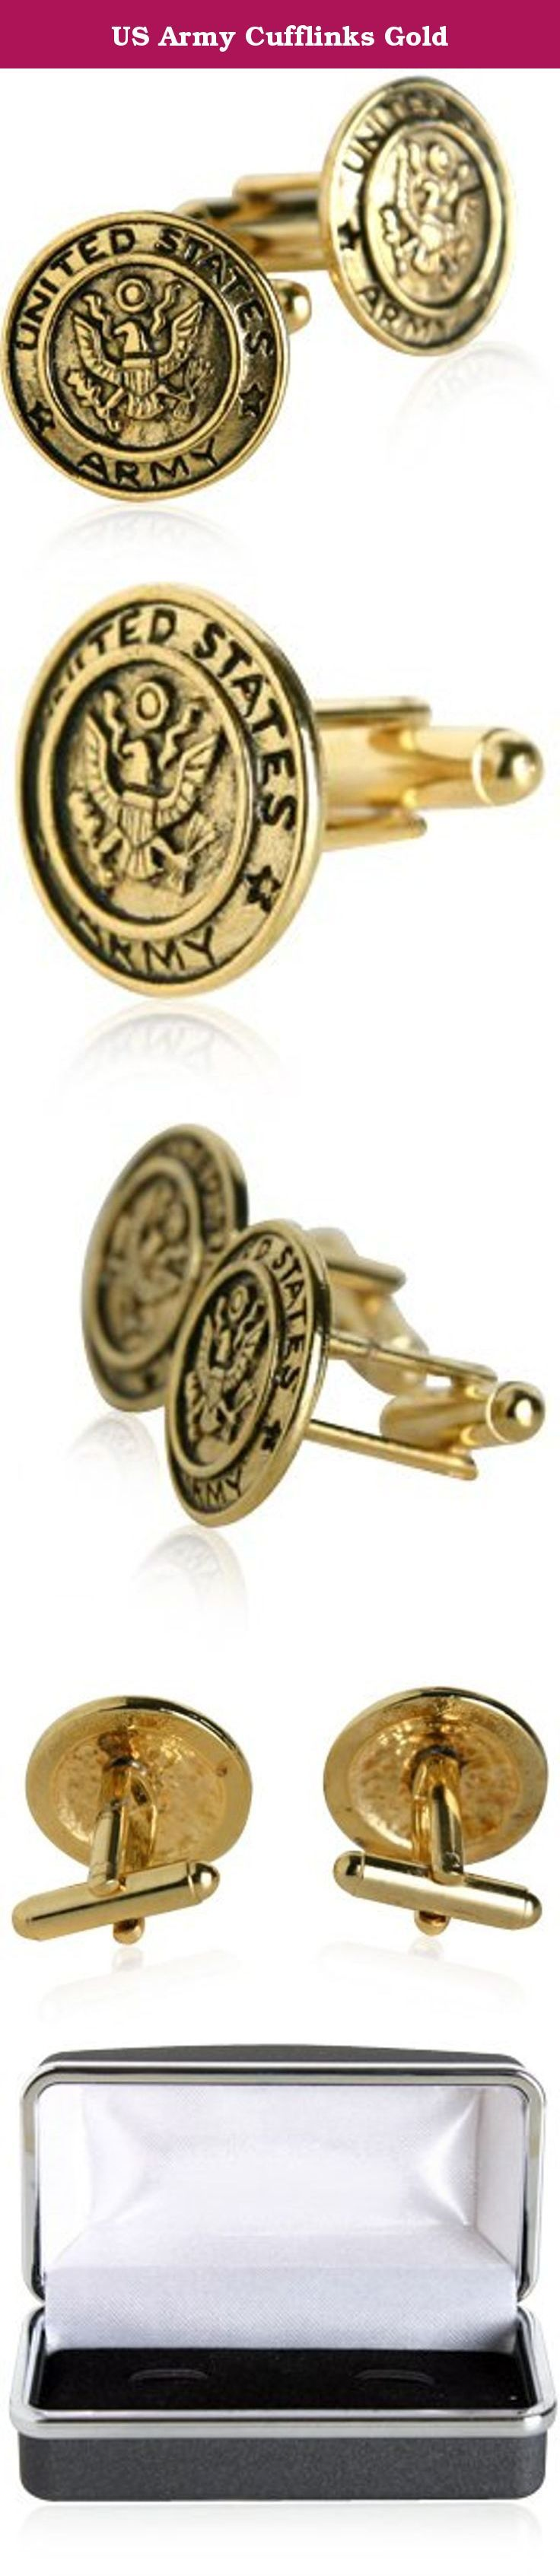 "US Army Cufflinks Gold. Order these US Army Cufflinks Gold while supplies last. They are a very popular item! - measures at only 3/4"" in diameter - hand-made and high quality - comes with a lifetime warranty - includes a handsome box to store in when not being used."